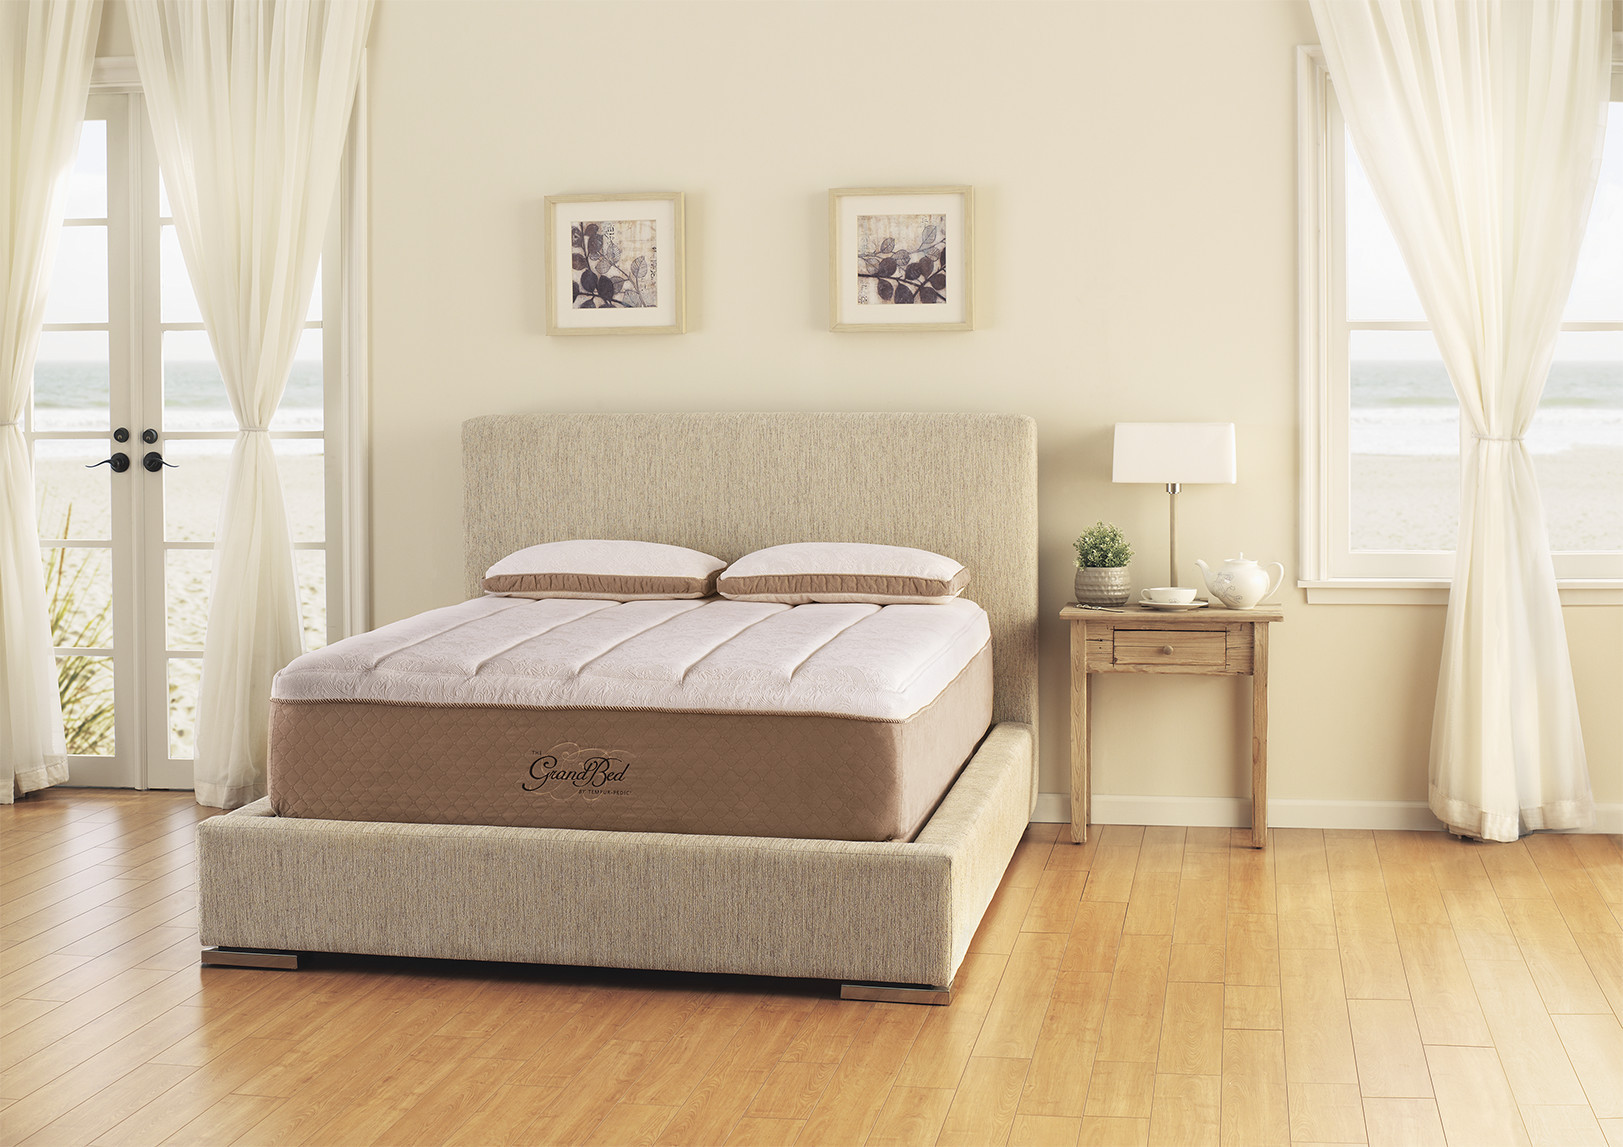 Image Result For Tempurpedic Twin